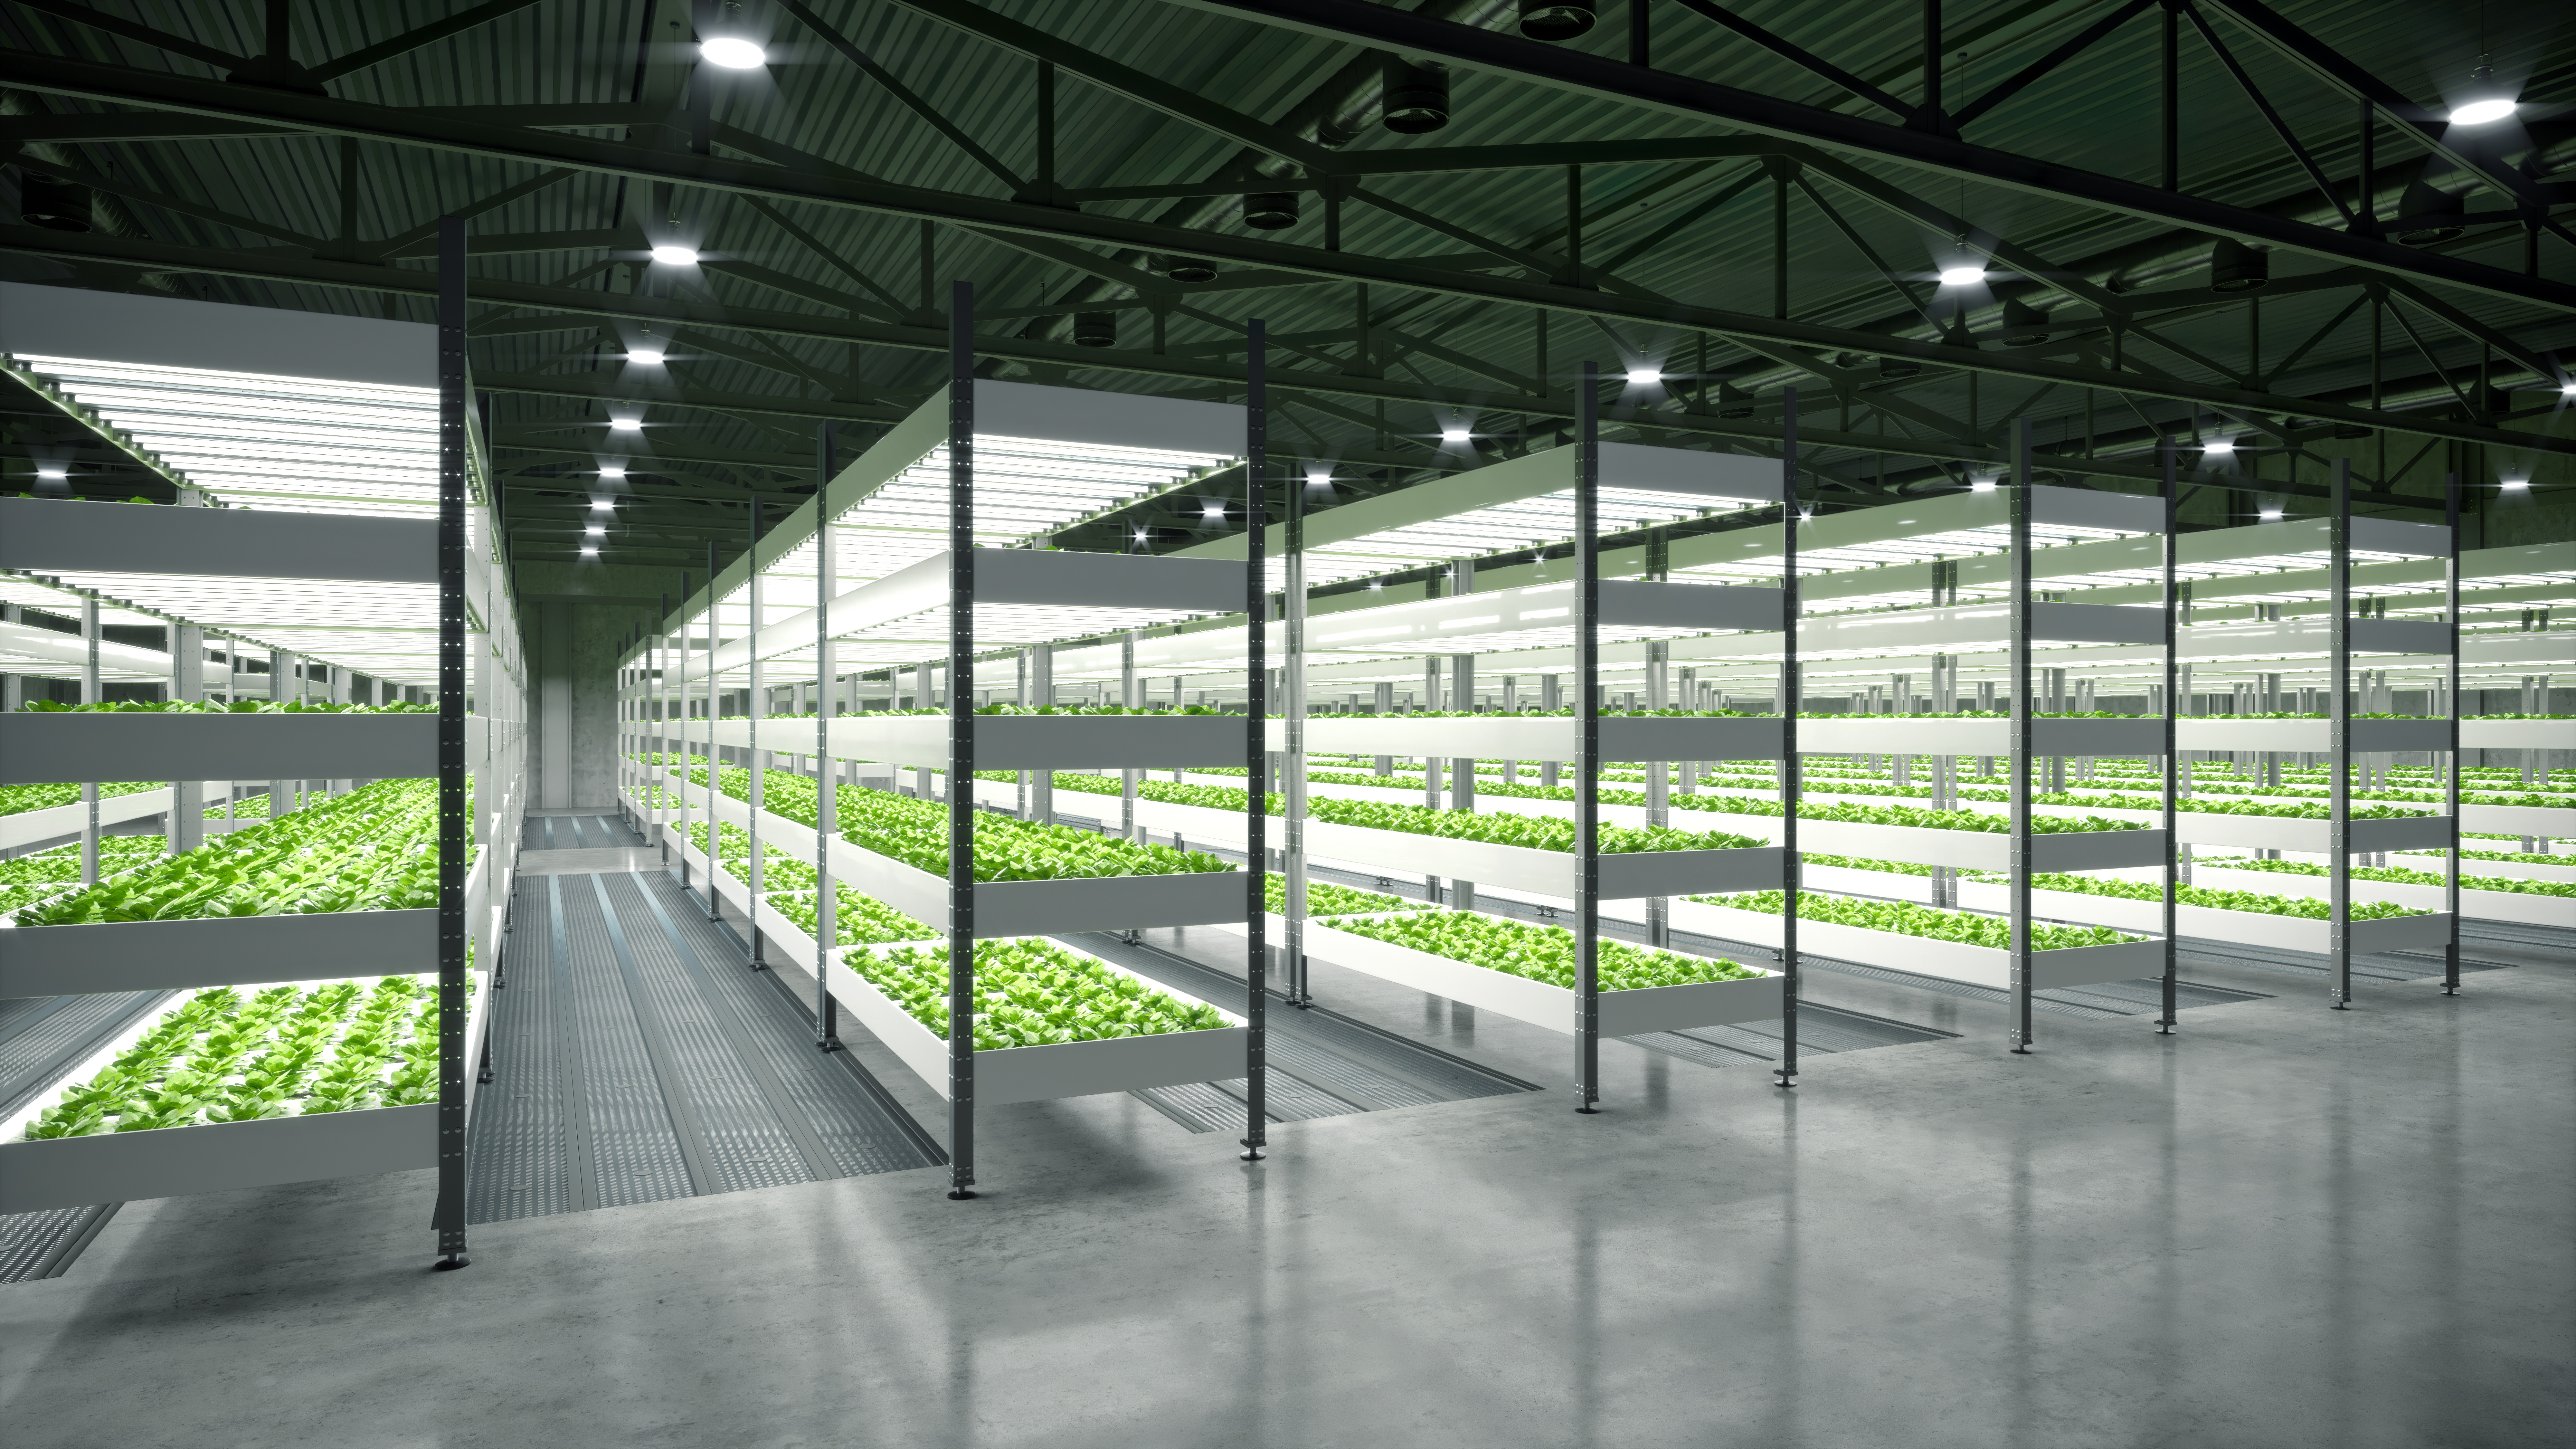 Vertical Farming: A new future for food production?